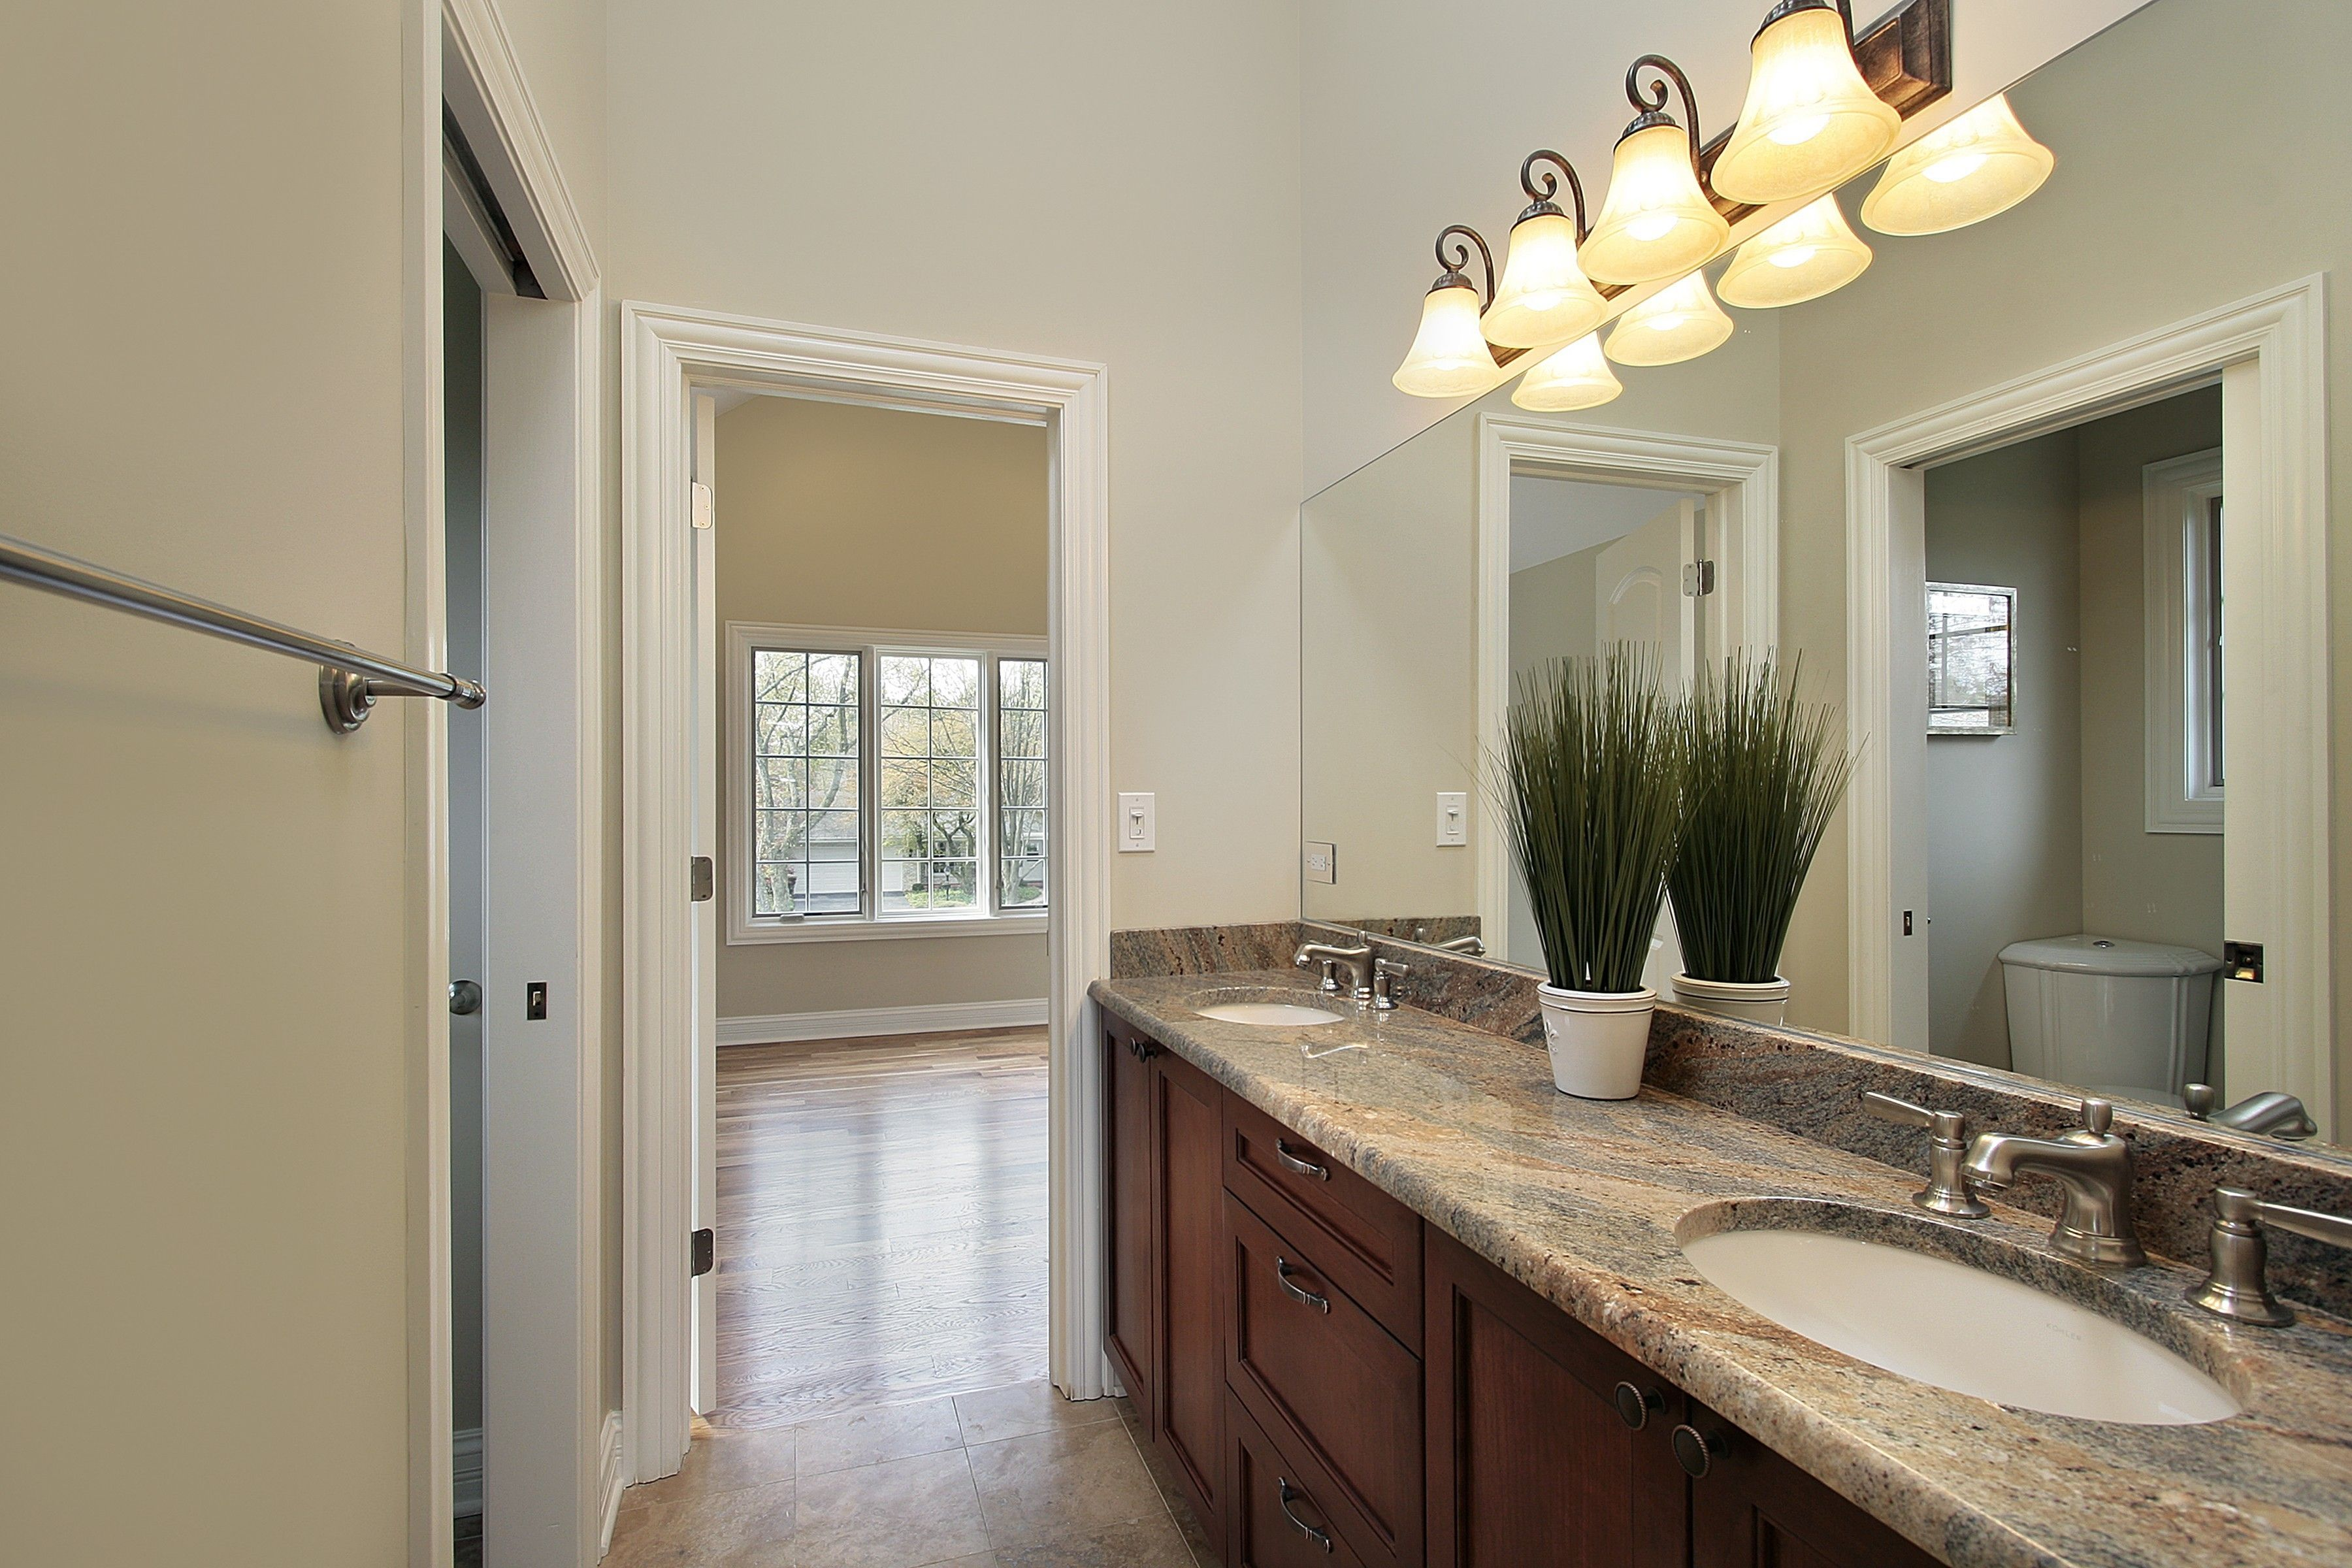 Paint Colors For Jack And Jill Bathrooms Jack And Jill Bathroom Bathroom Design Luxury Bathroom Design